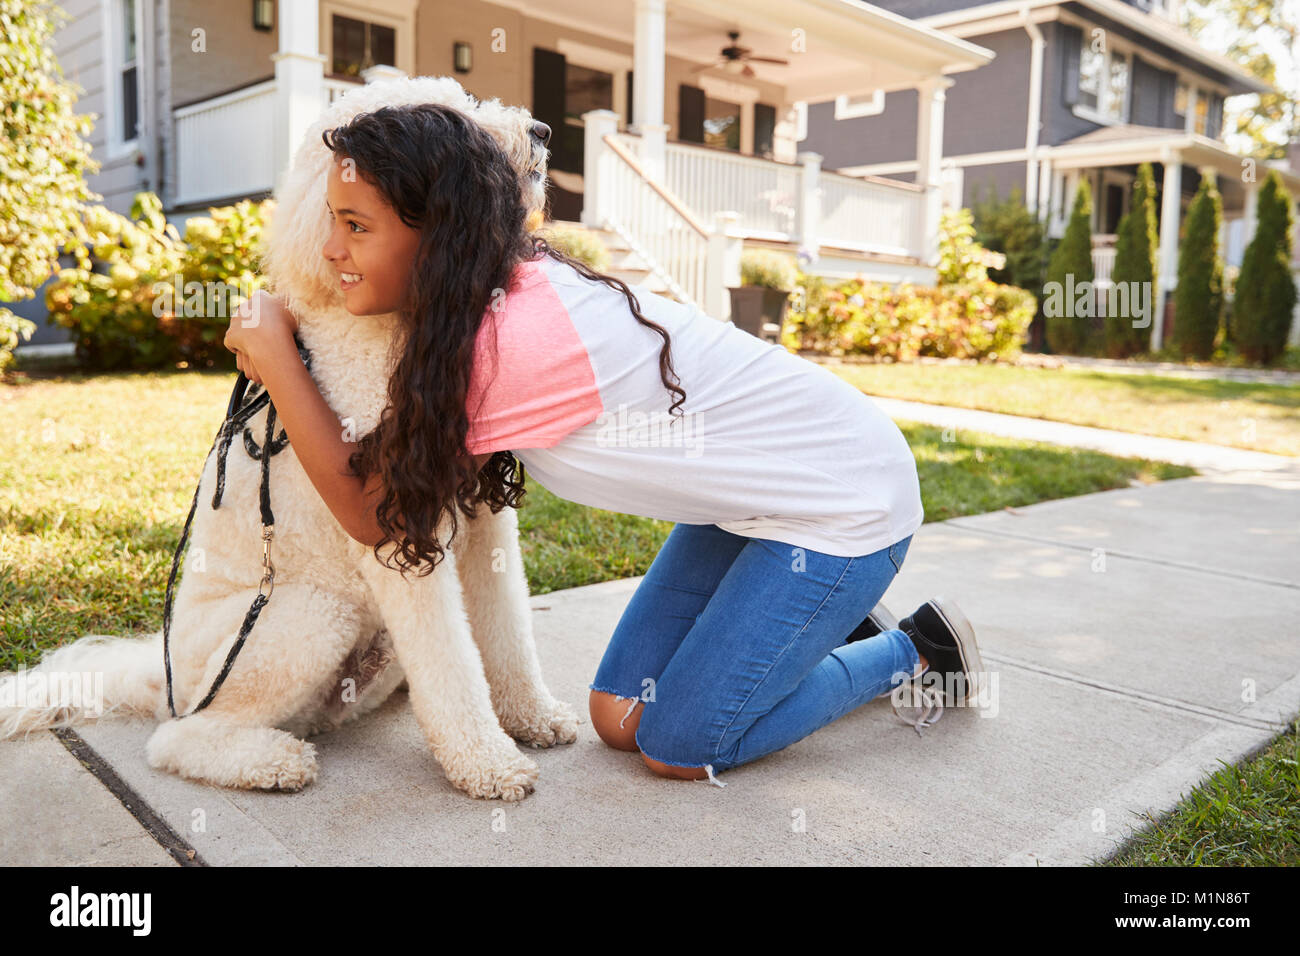 Girl Walking Dog Along Suburban Street - Stock Image